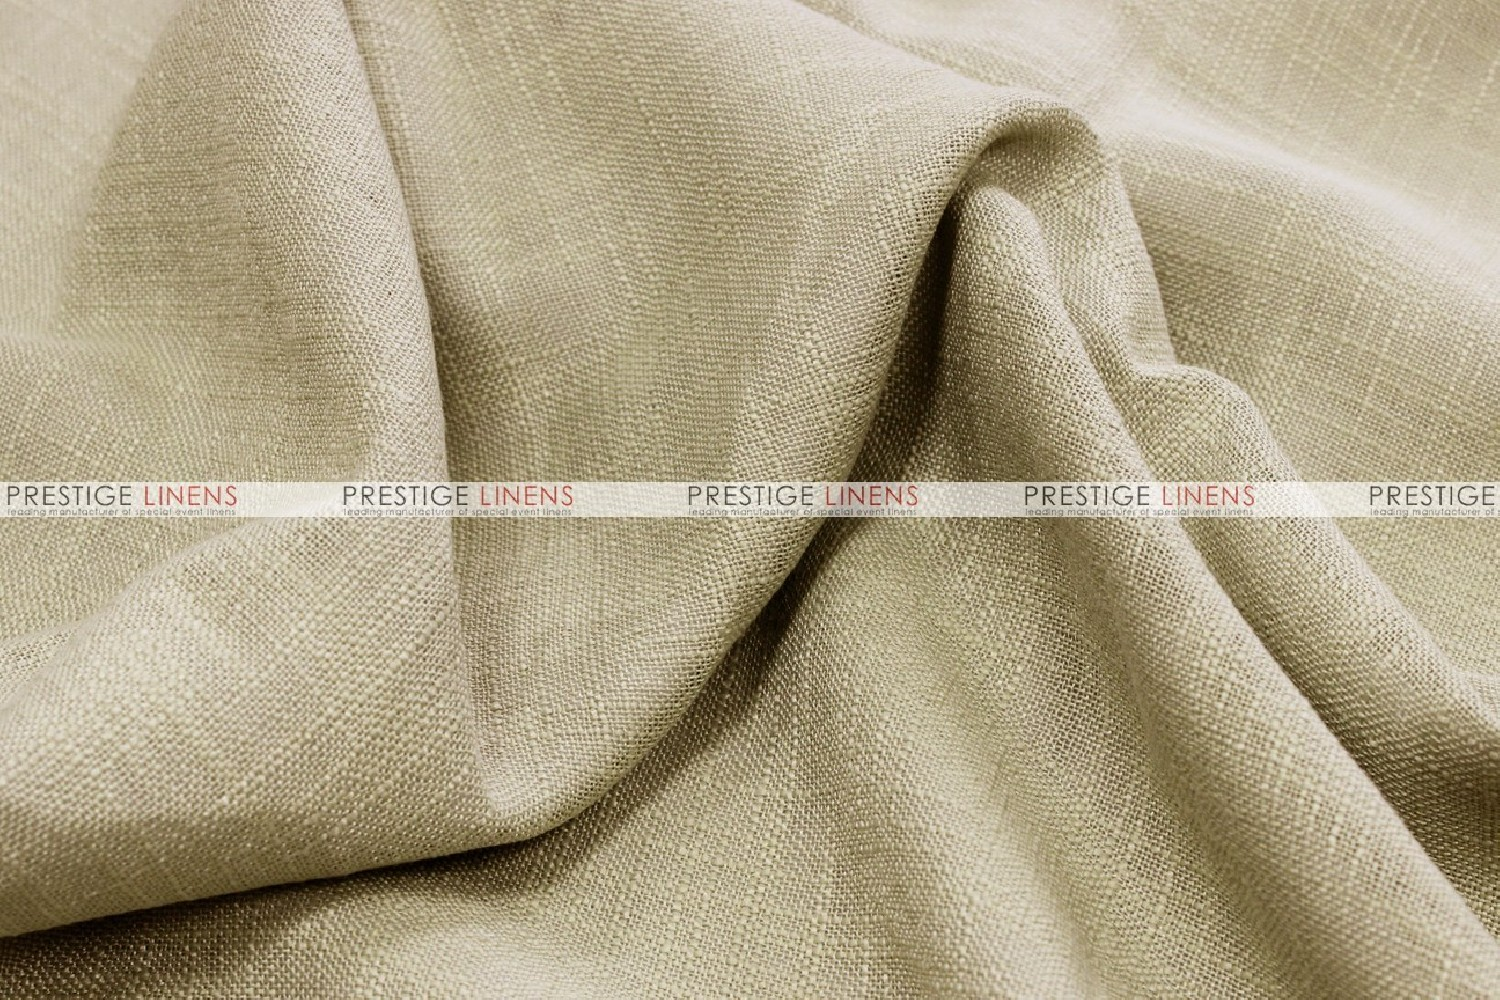 Dublin Linen Fabric By The Yard Bamboo Prestige Linens